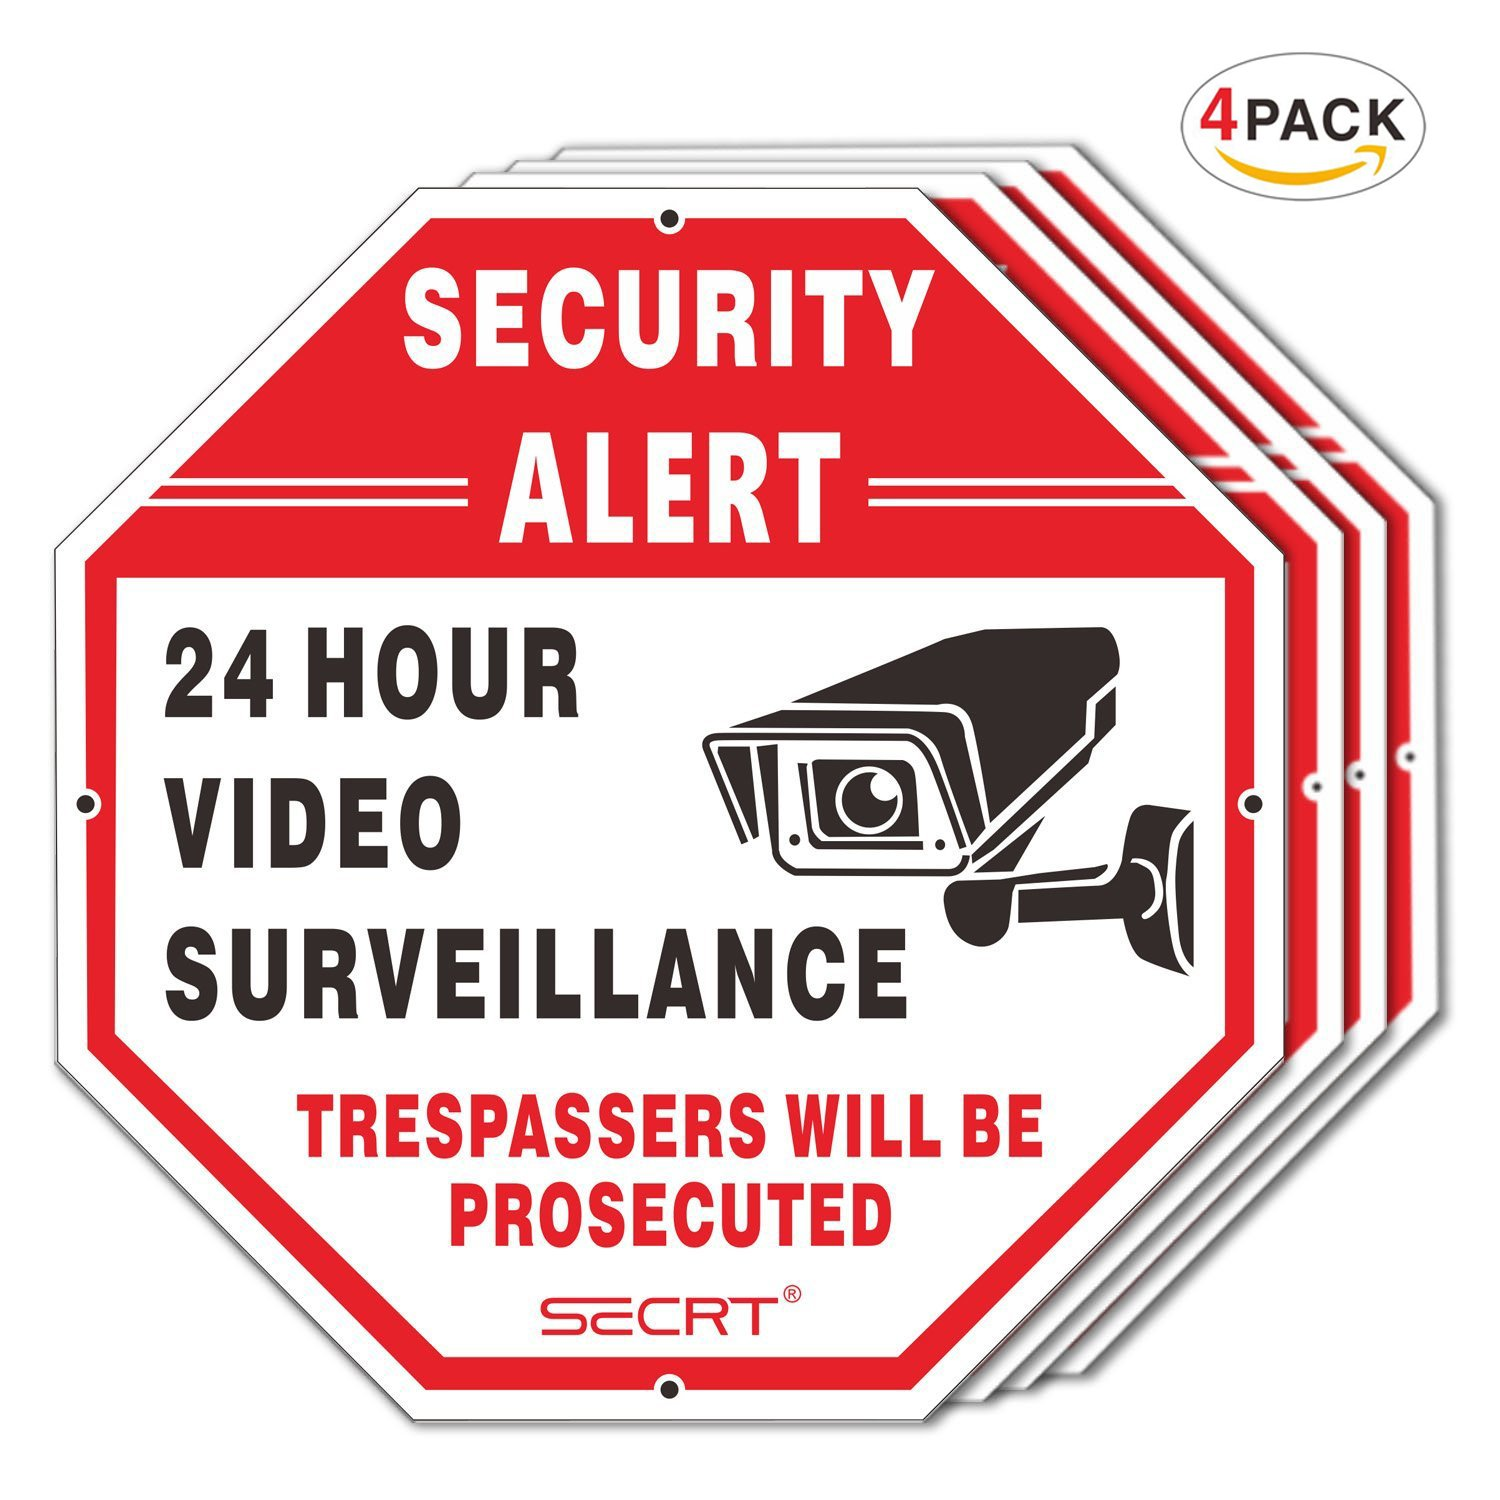 SECRT 4-Pack Video Surveillance Sign, No Trespassing Metal Warning, Octagon 12''x12'' 40Mil Thick Aluminum for Home Business CCTV Security Camera, UV Protected & Waterproof (Reflective) by SECRT